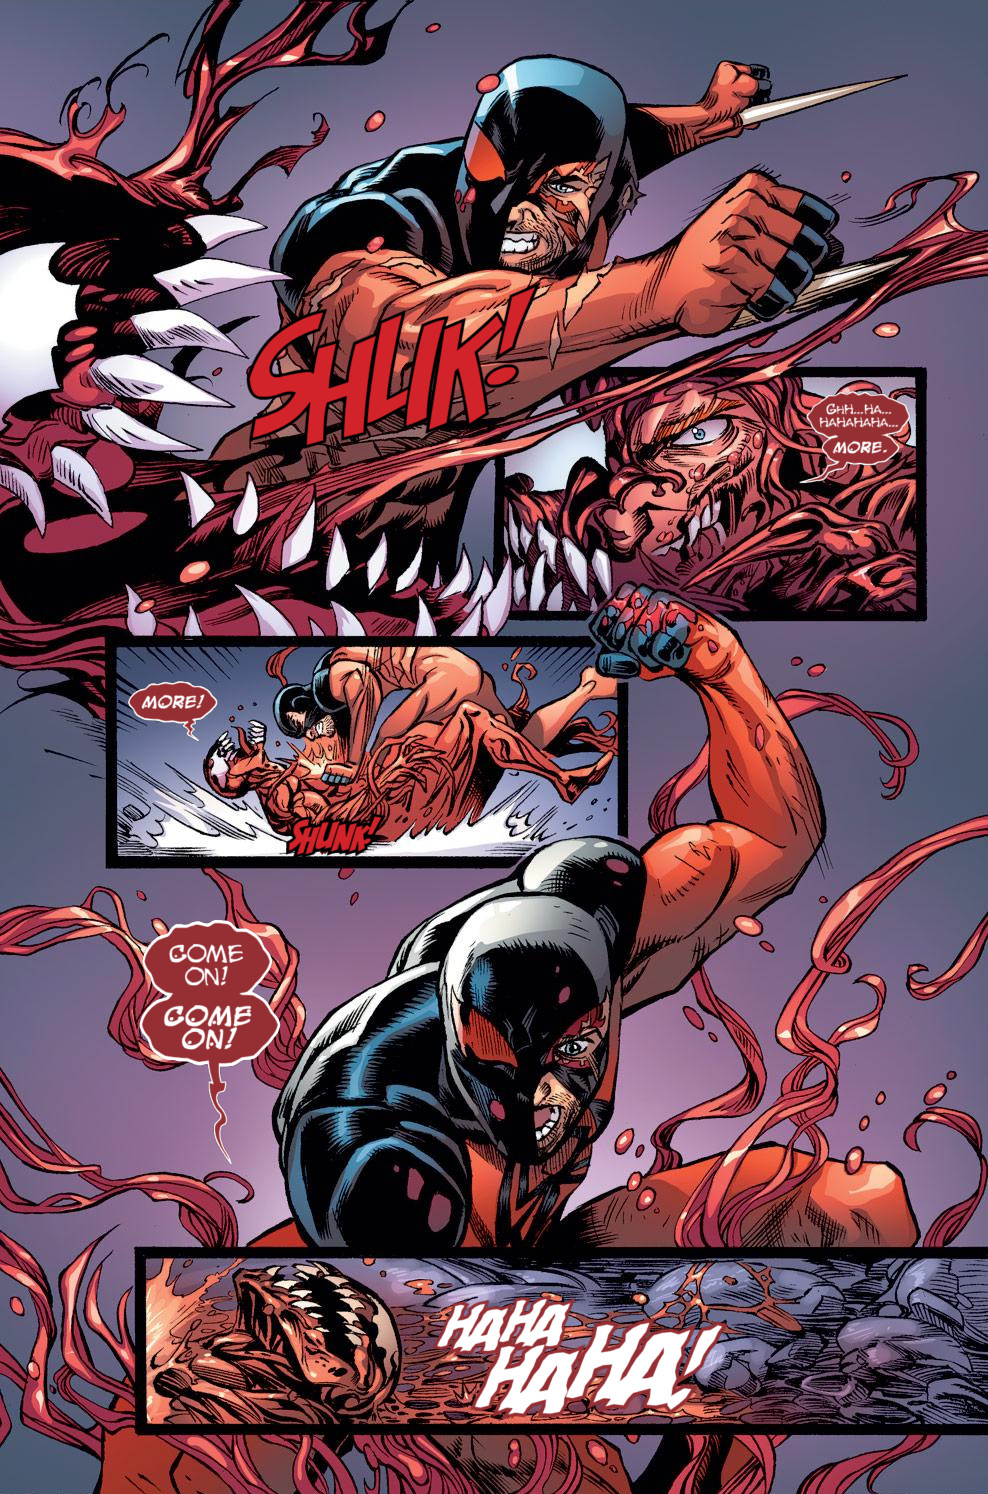 General Comics and Related media discussion. - Page 6 ScarletSpider_11_TheGroup_010